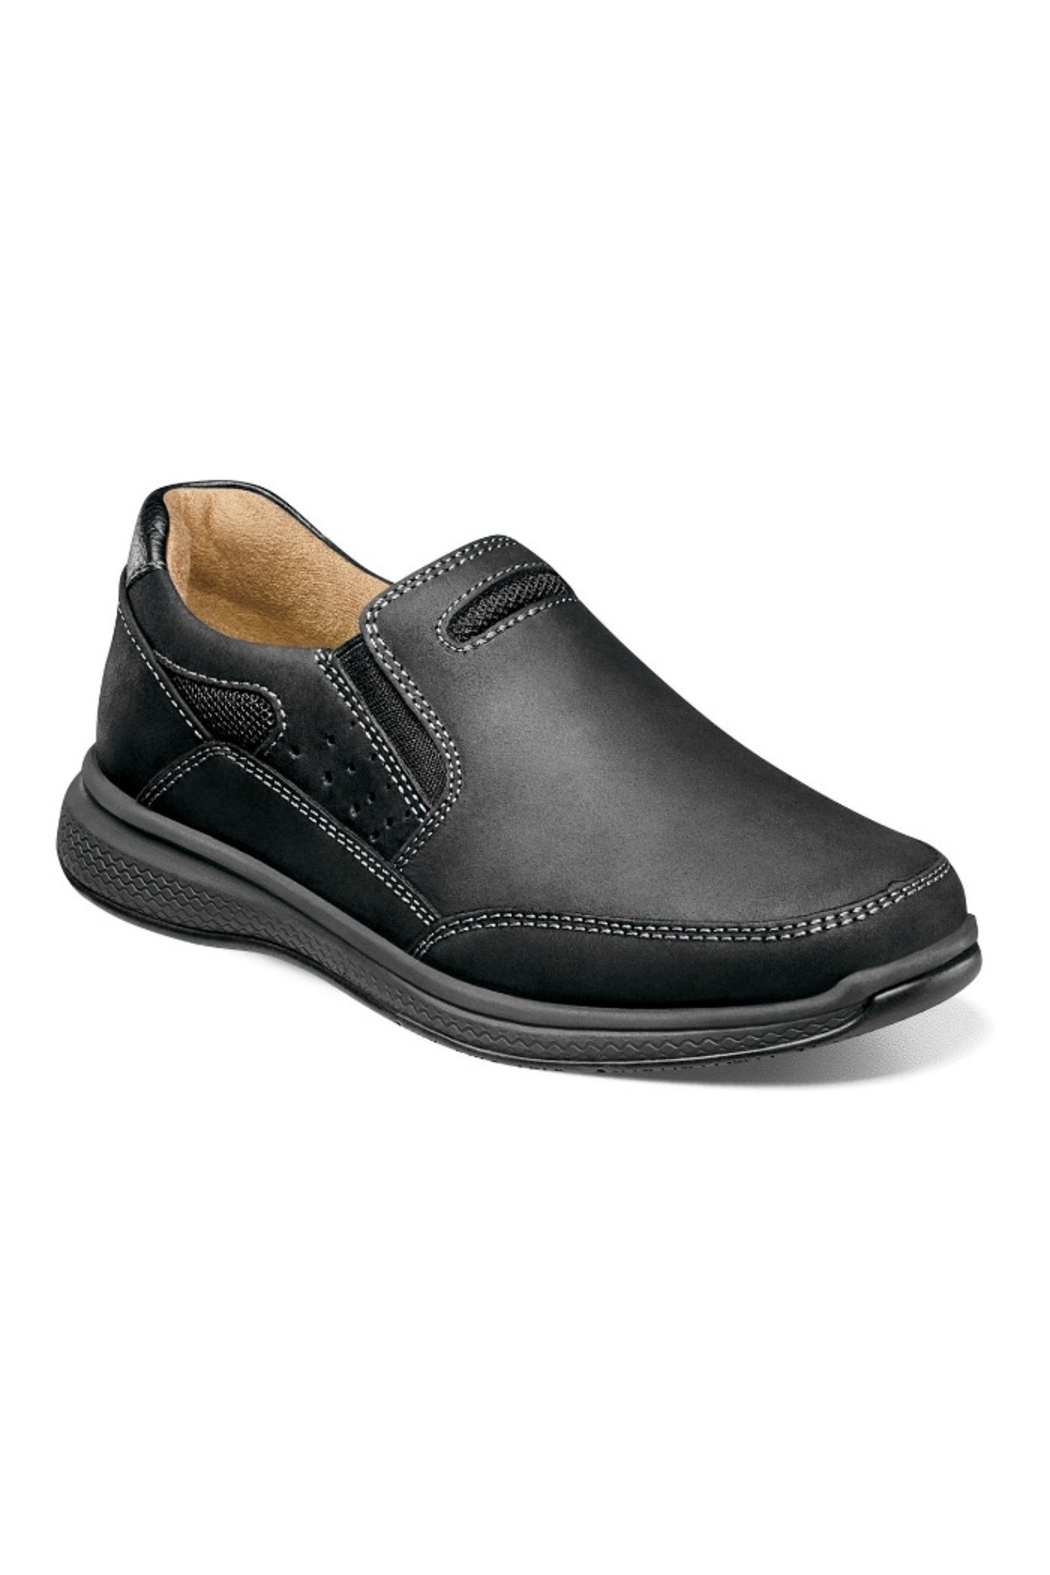 Florsheim Great Lakes Jr. Sport Slip On - Front Cropped Image